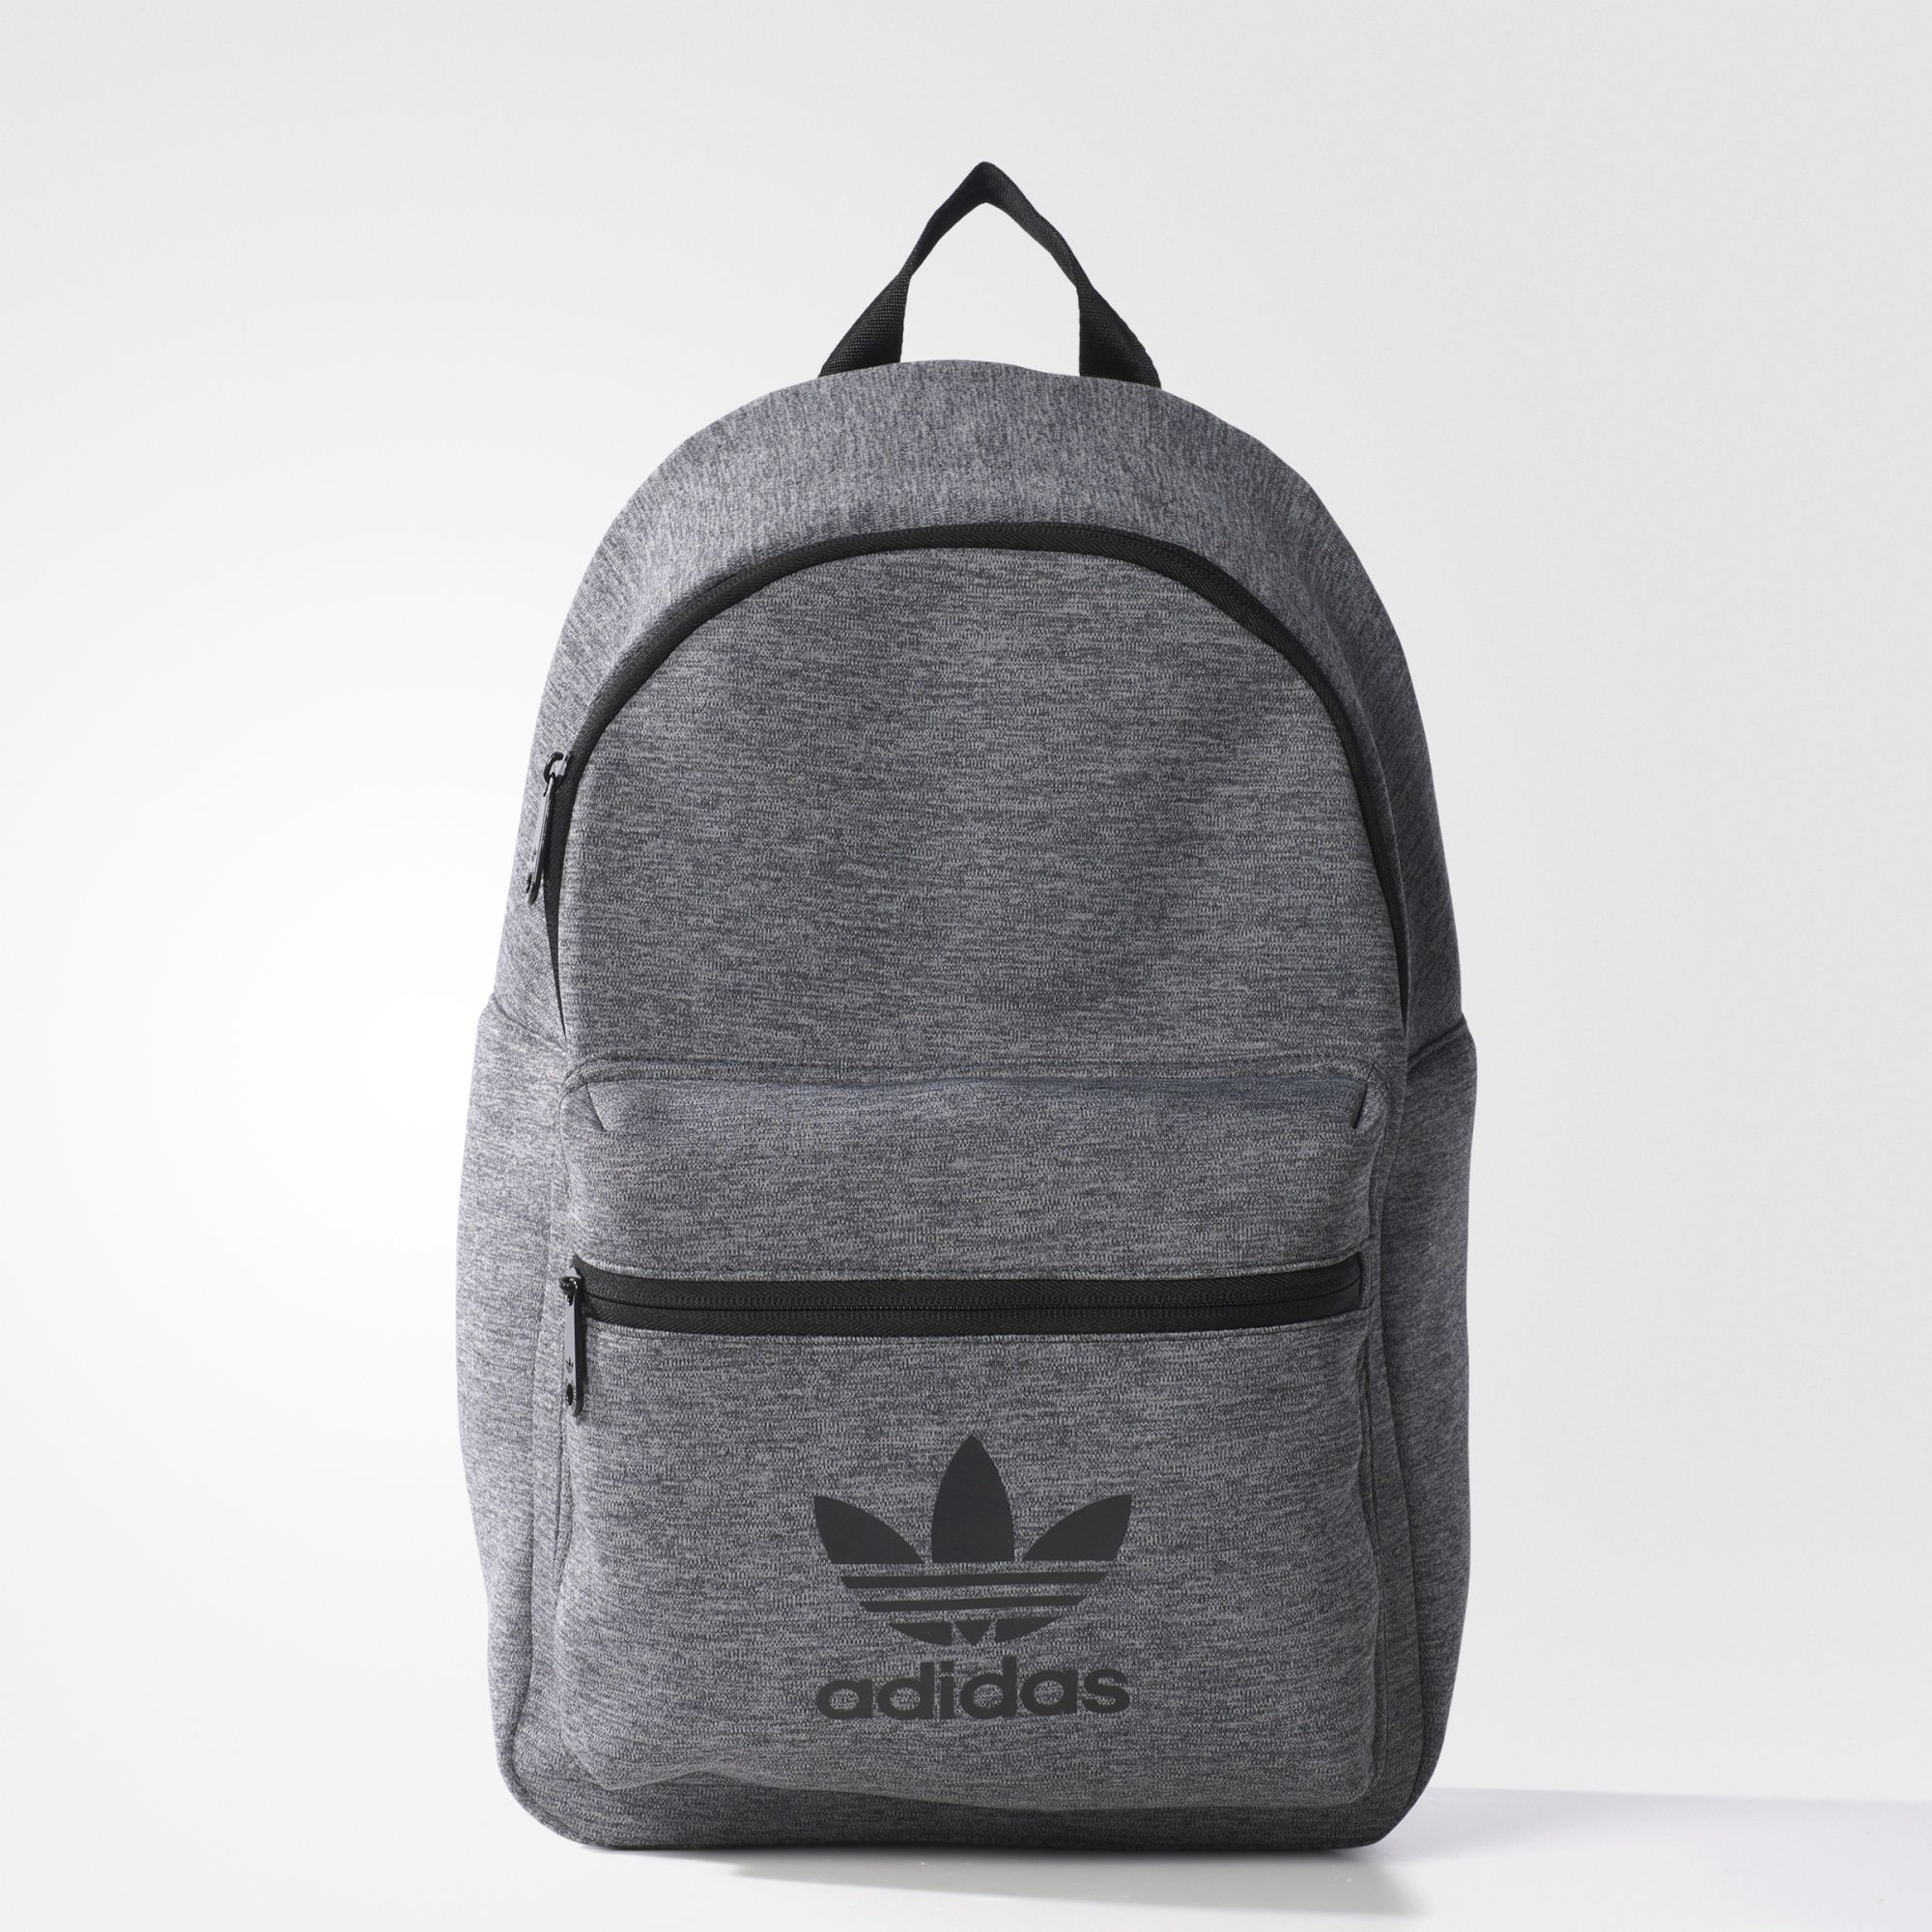 a0856498d3eb Buy adidas big backpack   OFF78% Discounted